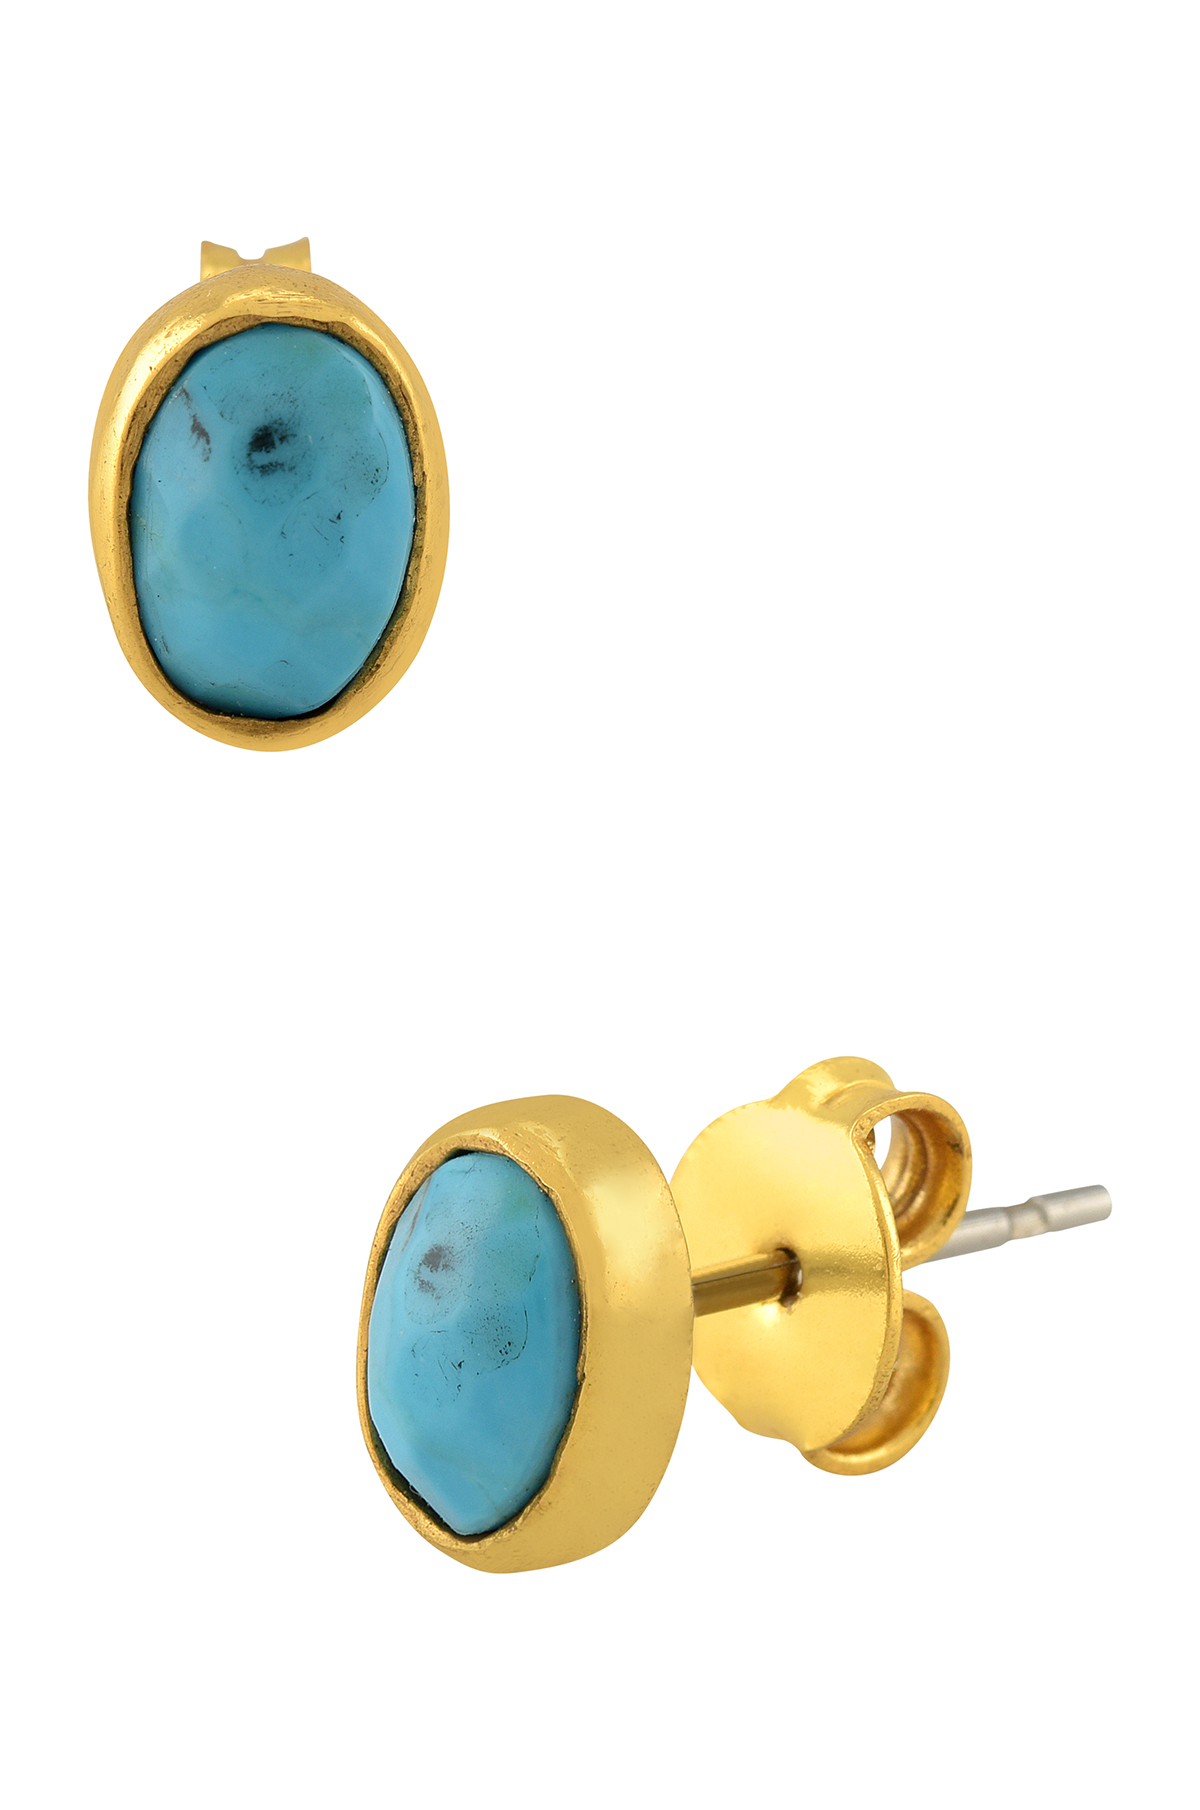 Gold Plated Oval Turquoise Ear Stud